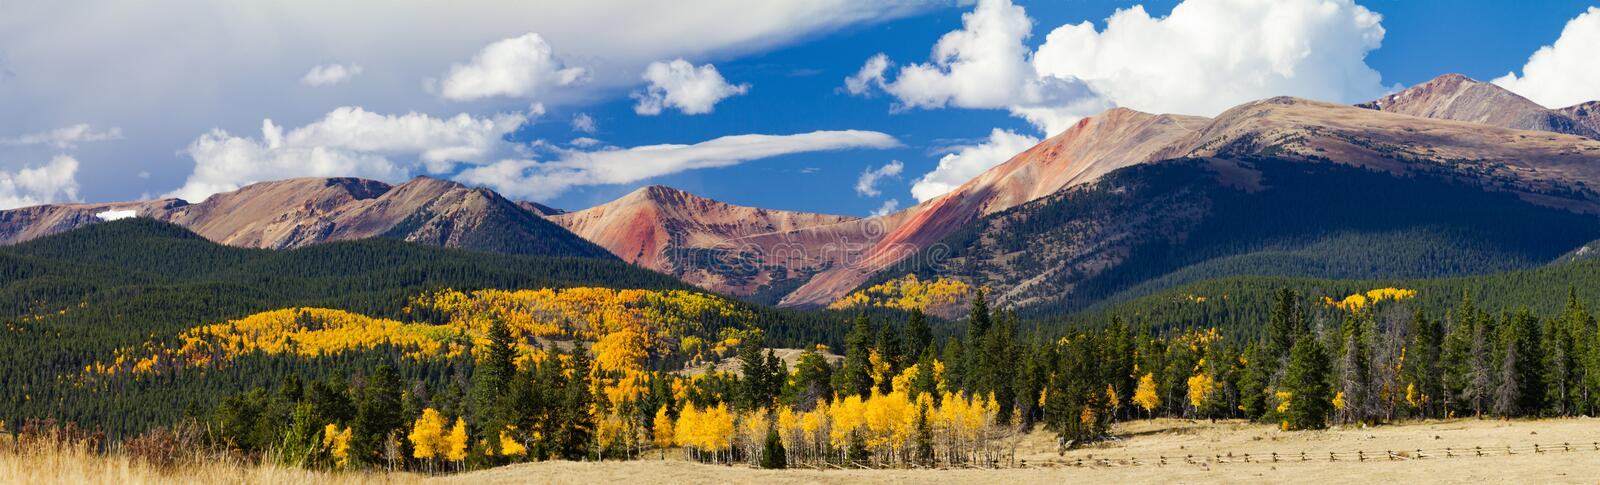 Panoramic Fall Landscape Colorado Rocky Mountains. Panoramic Fall Landscape with a Colorful Forest of Golden Aspen Trees in the Colorado Rocky Mountains royalty free stock photo